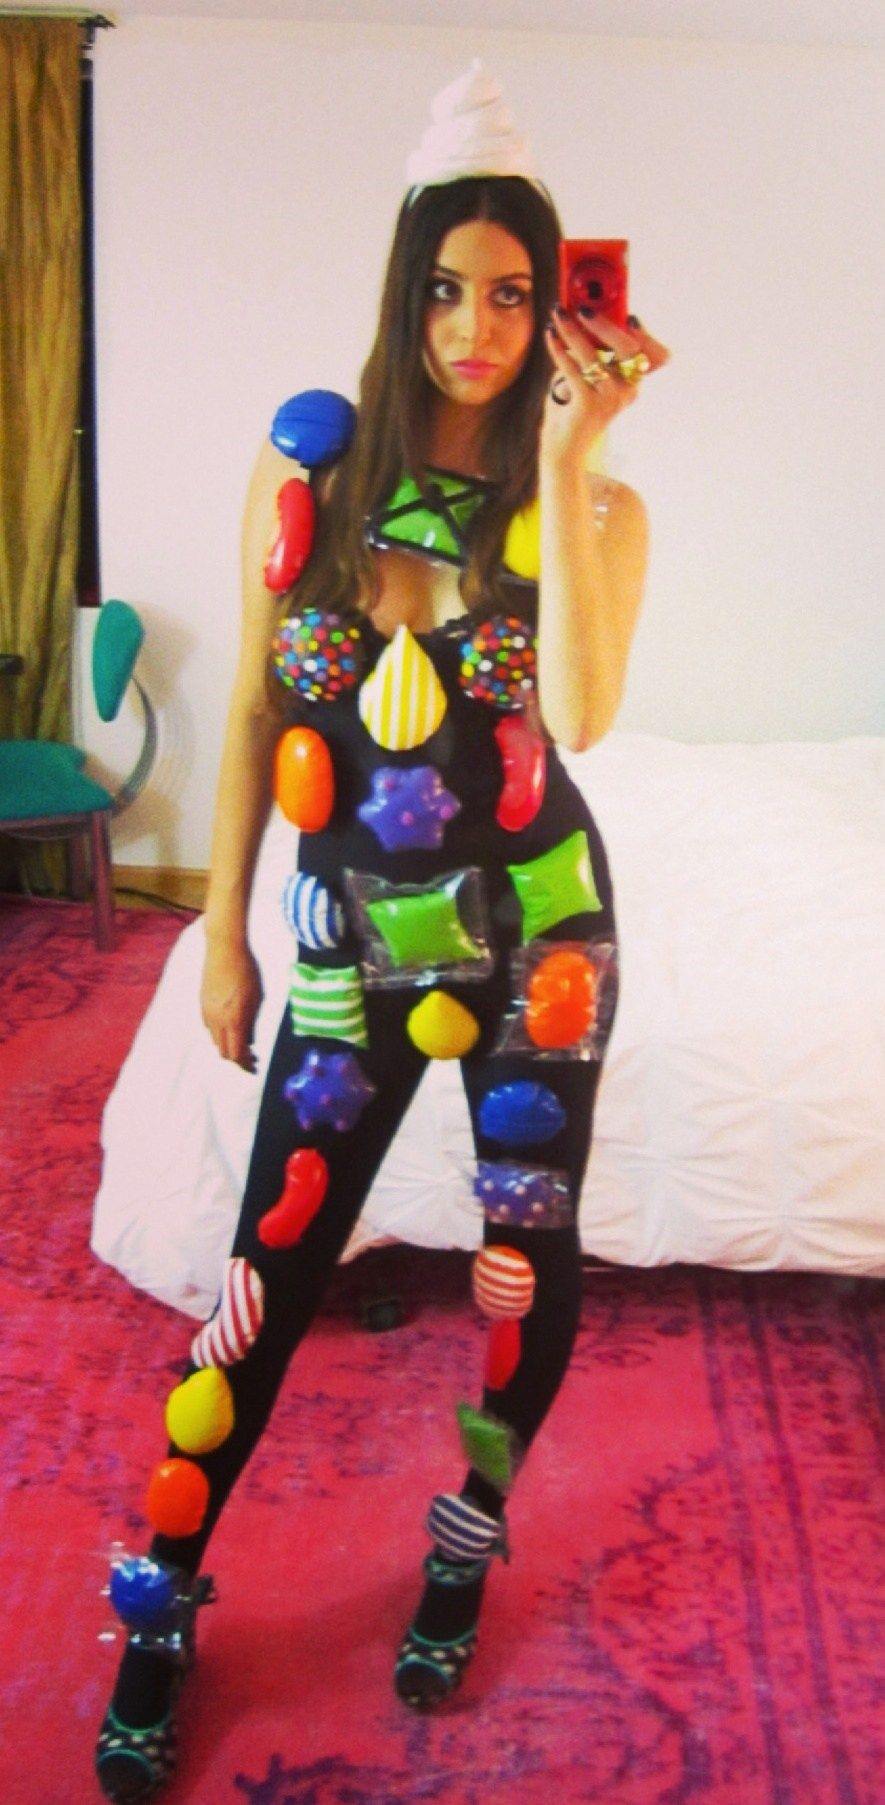 Candy Crush Costume Dress Up In 2018 Pinterest Halloween - Disfraces-chulos-para-halloween